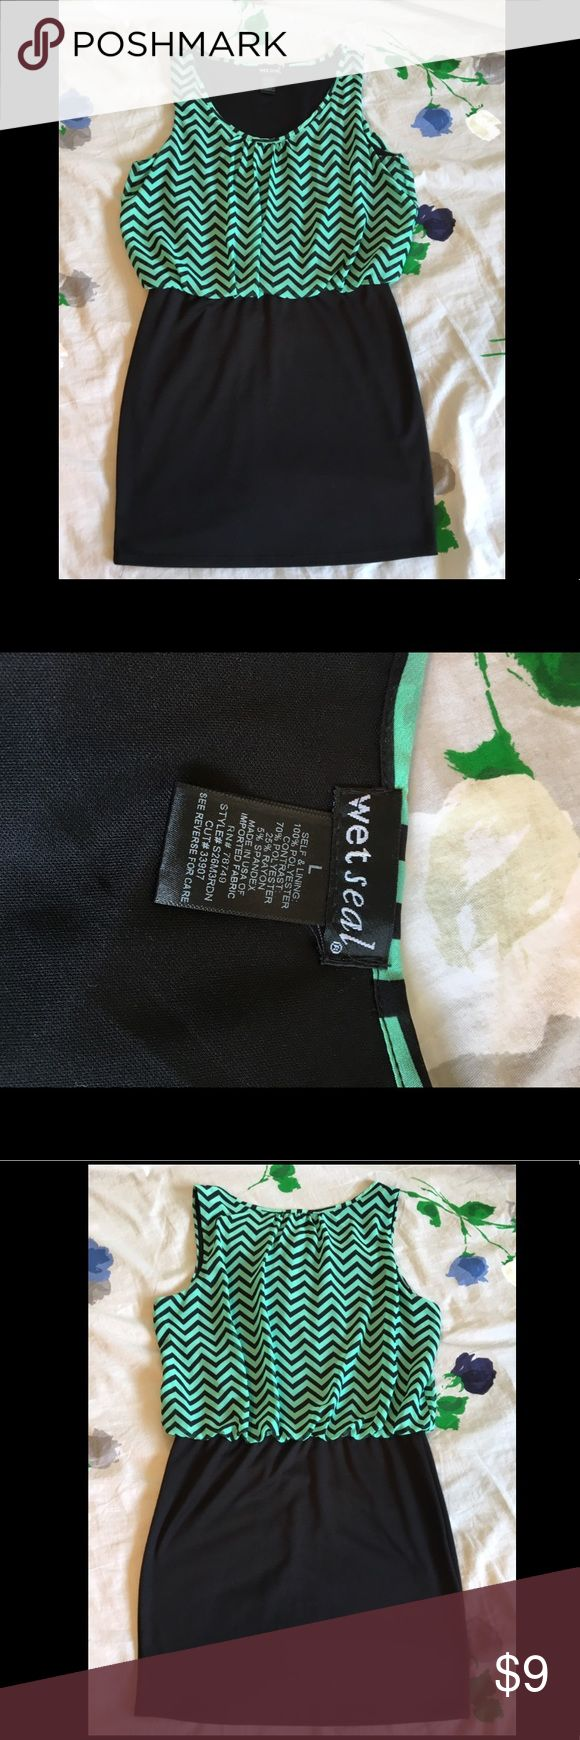 "Wet Seal Mint Chevron Dress Blousy top with lining and black stretchy skirt. Adorable dress!! 33"" long Wet Seal Dresses Mini"